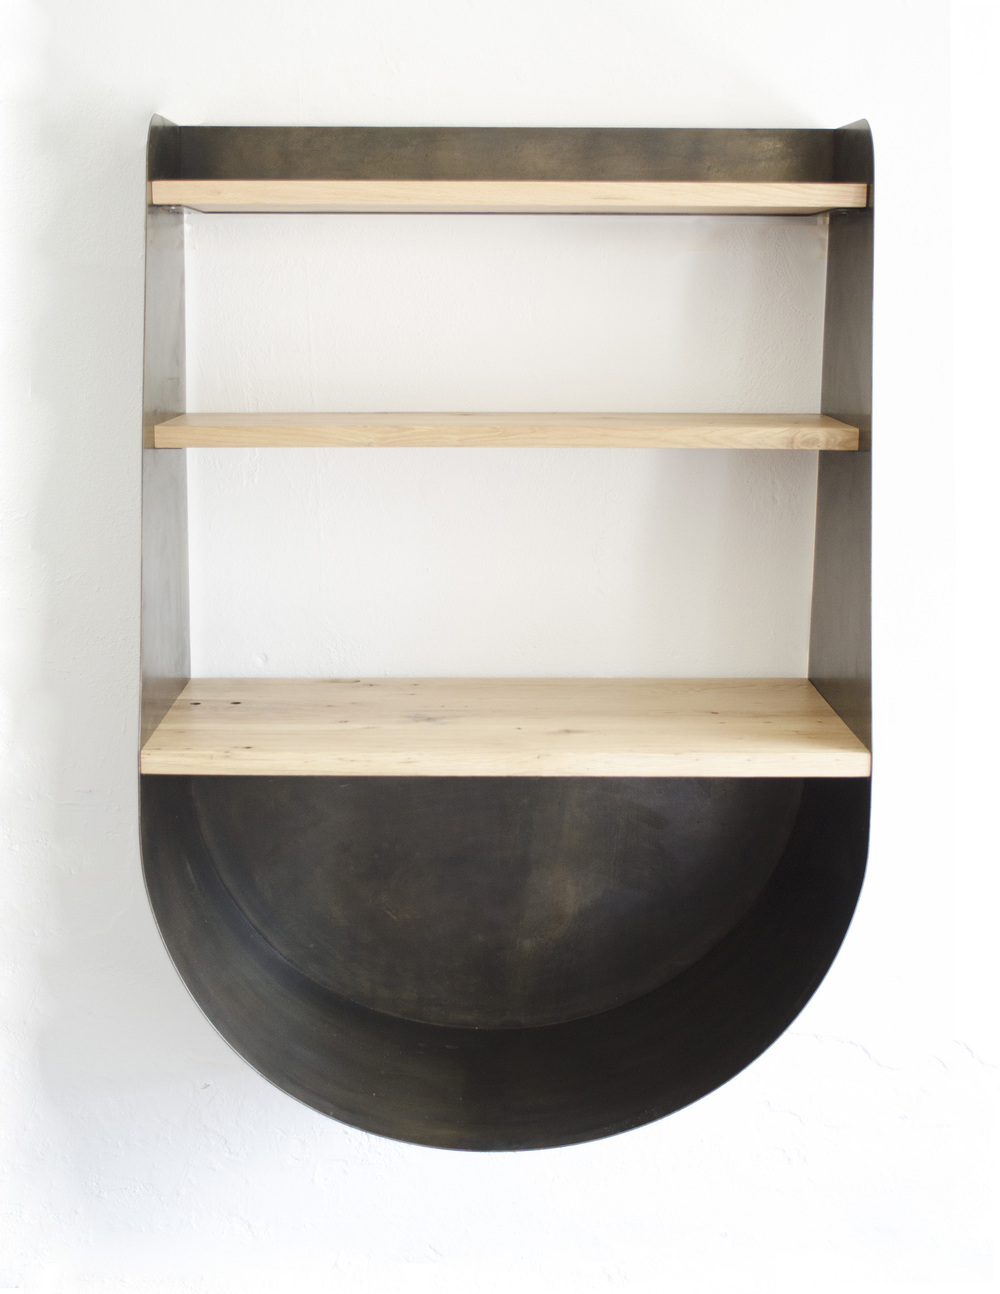 Wood storage + shelving / Commission